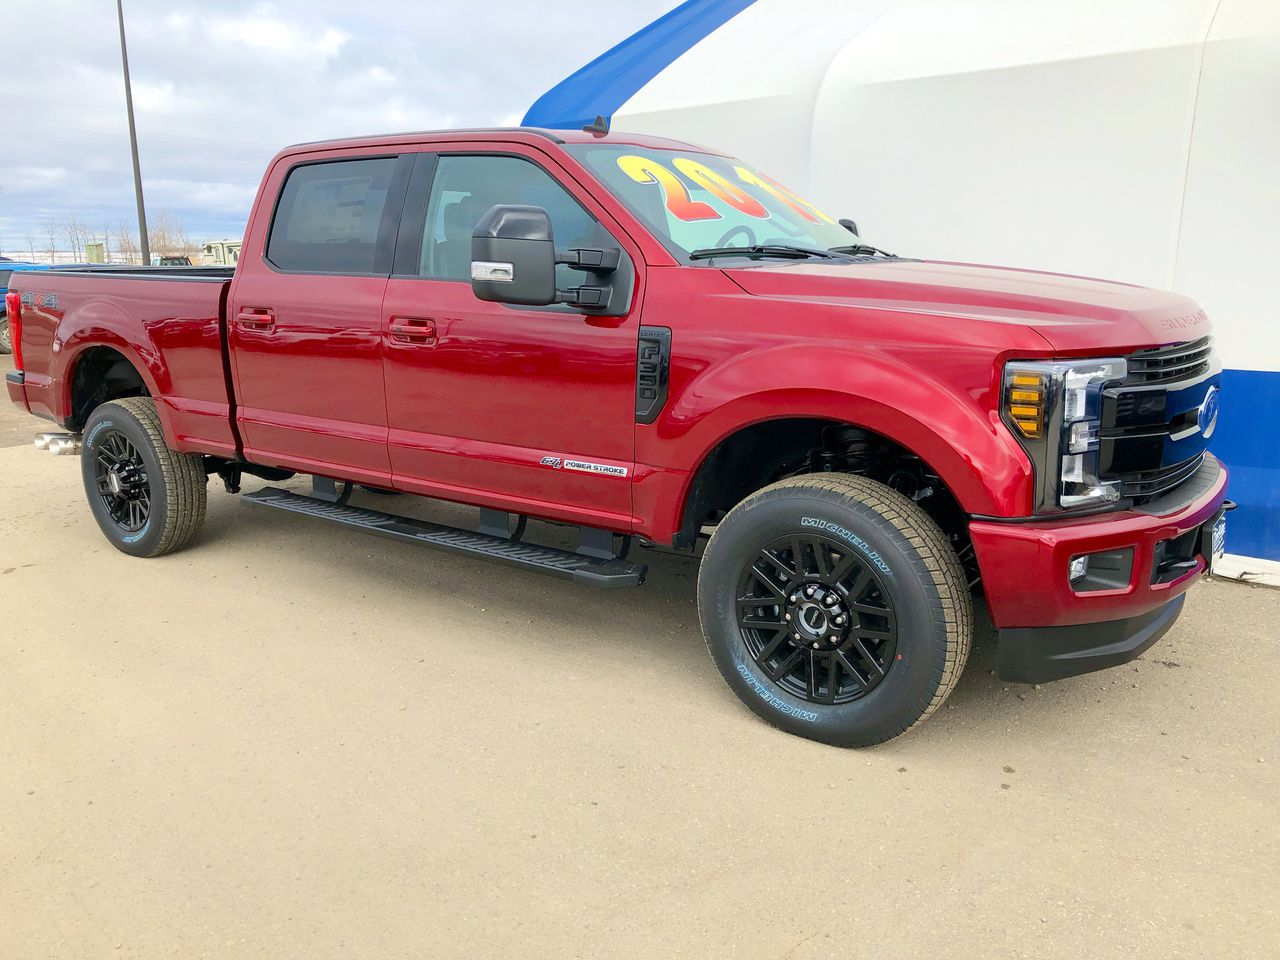 2019 Ford F-350 Super Duty Lariat (0N6458) Main Image